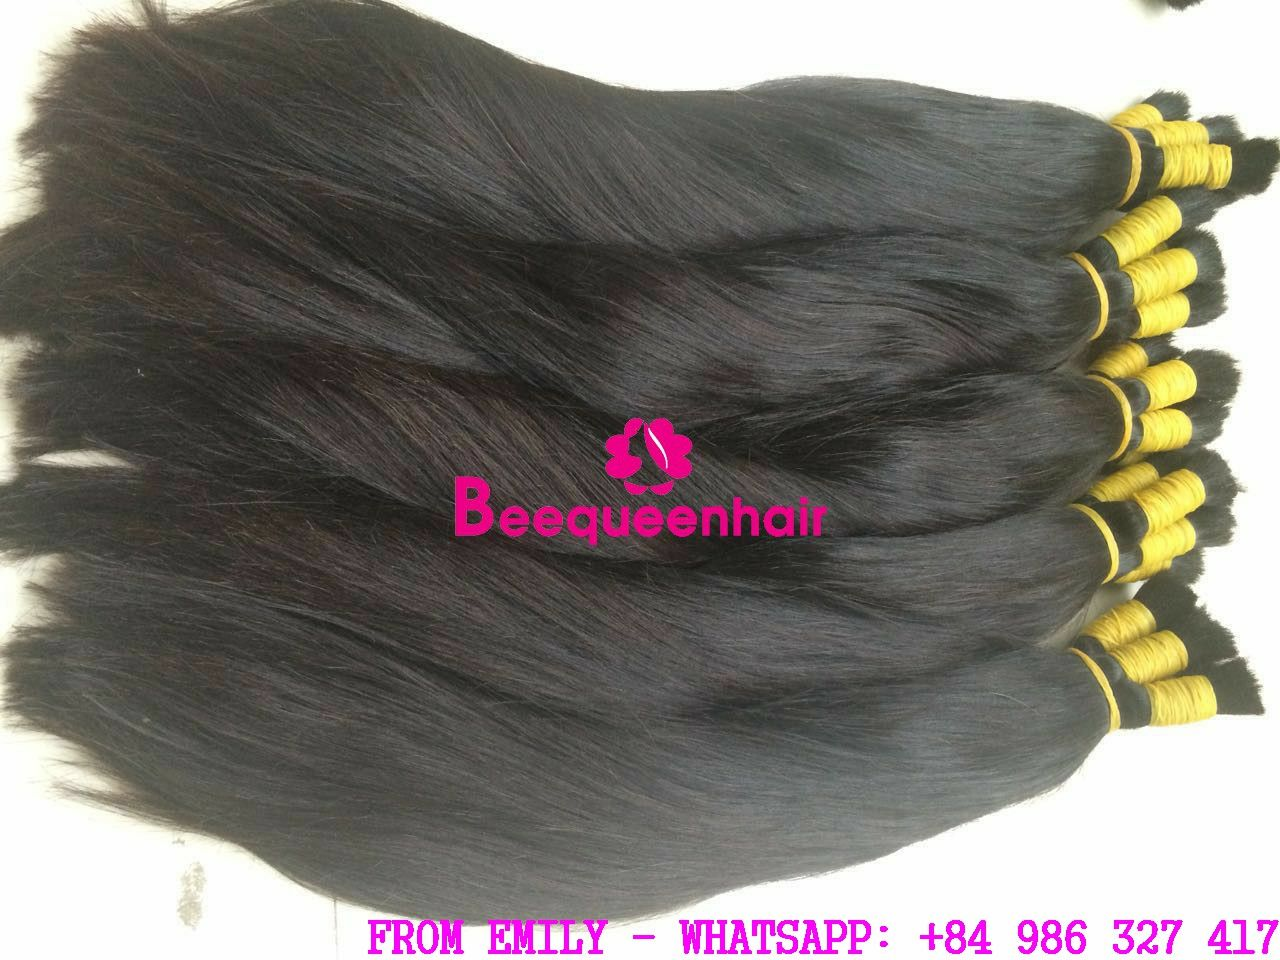 Pin By Beequeenhair On Bulk Straight Hair Extensions Pinterest